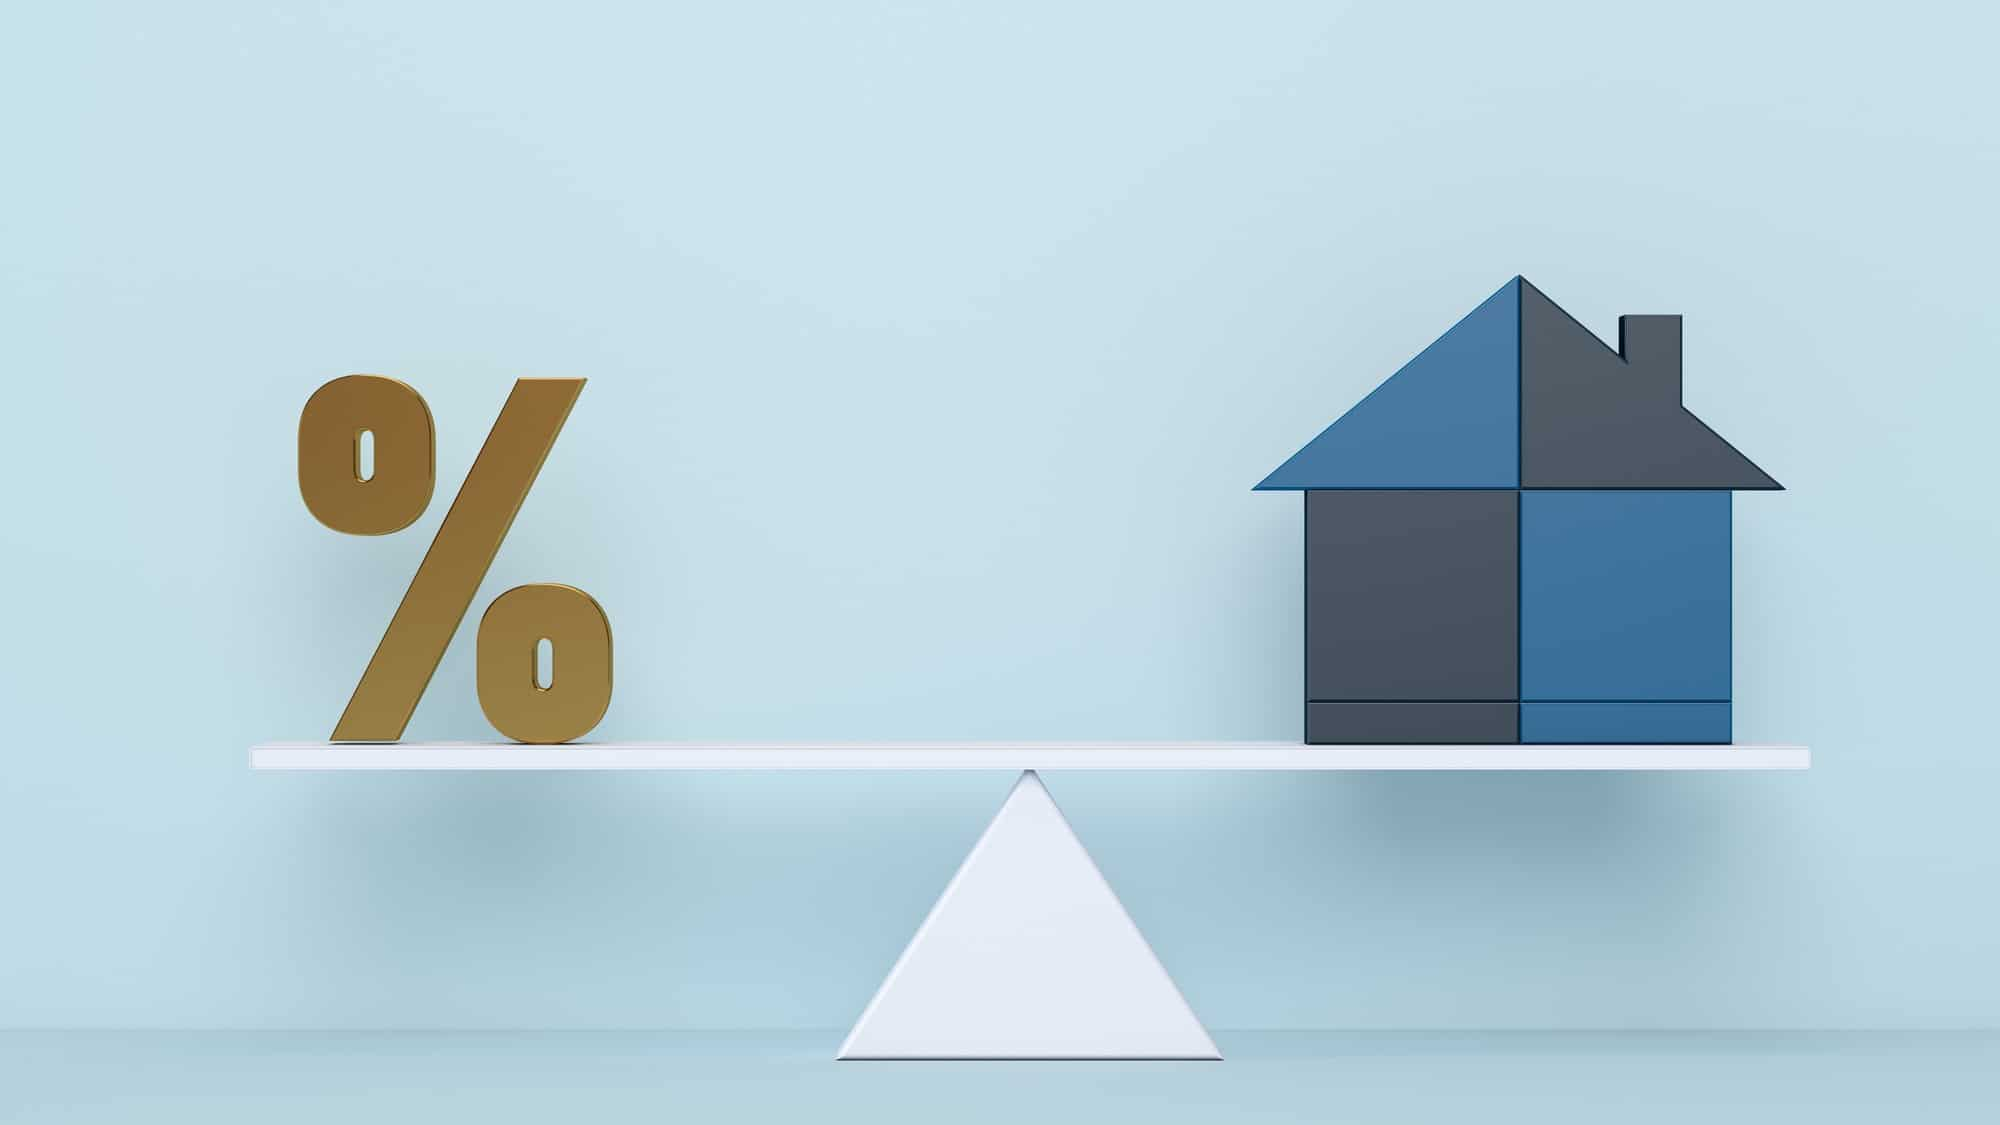 Graphic representation of a House and percentage symbol balancing on scales